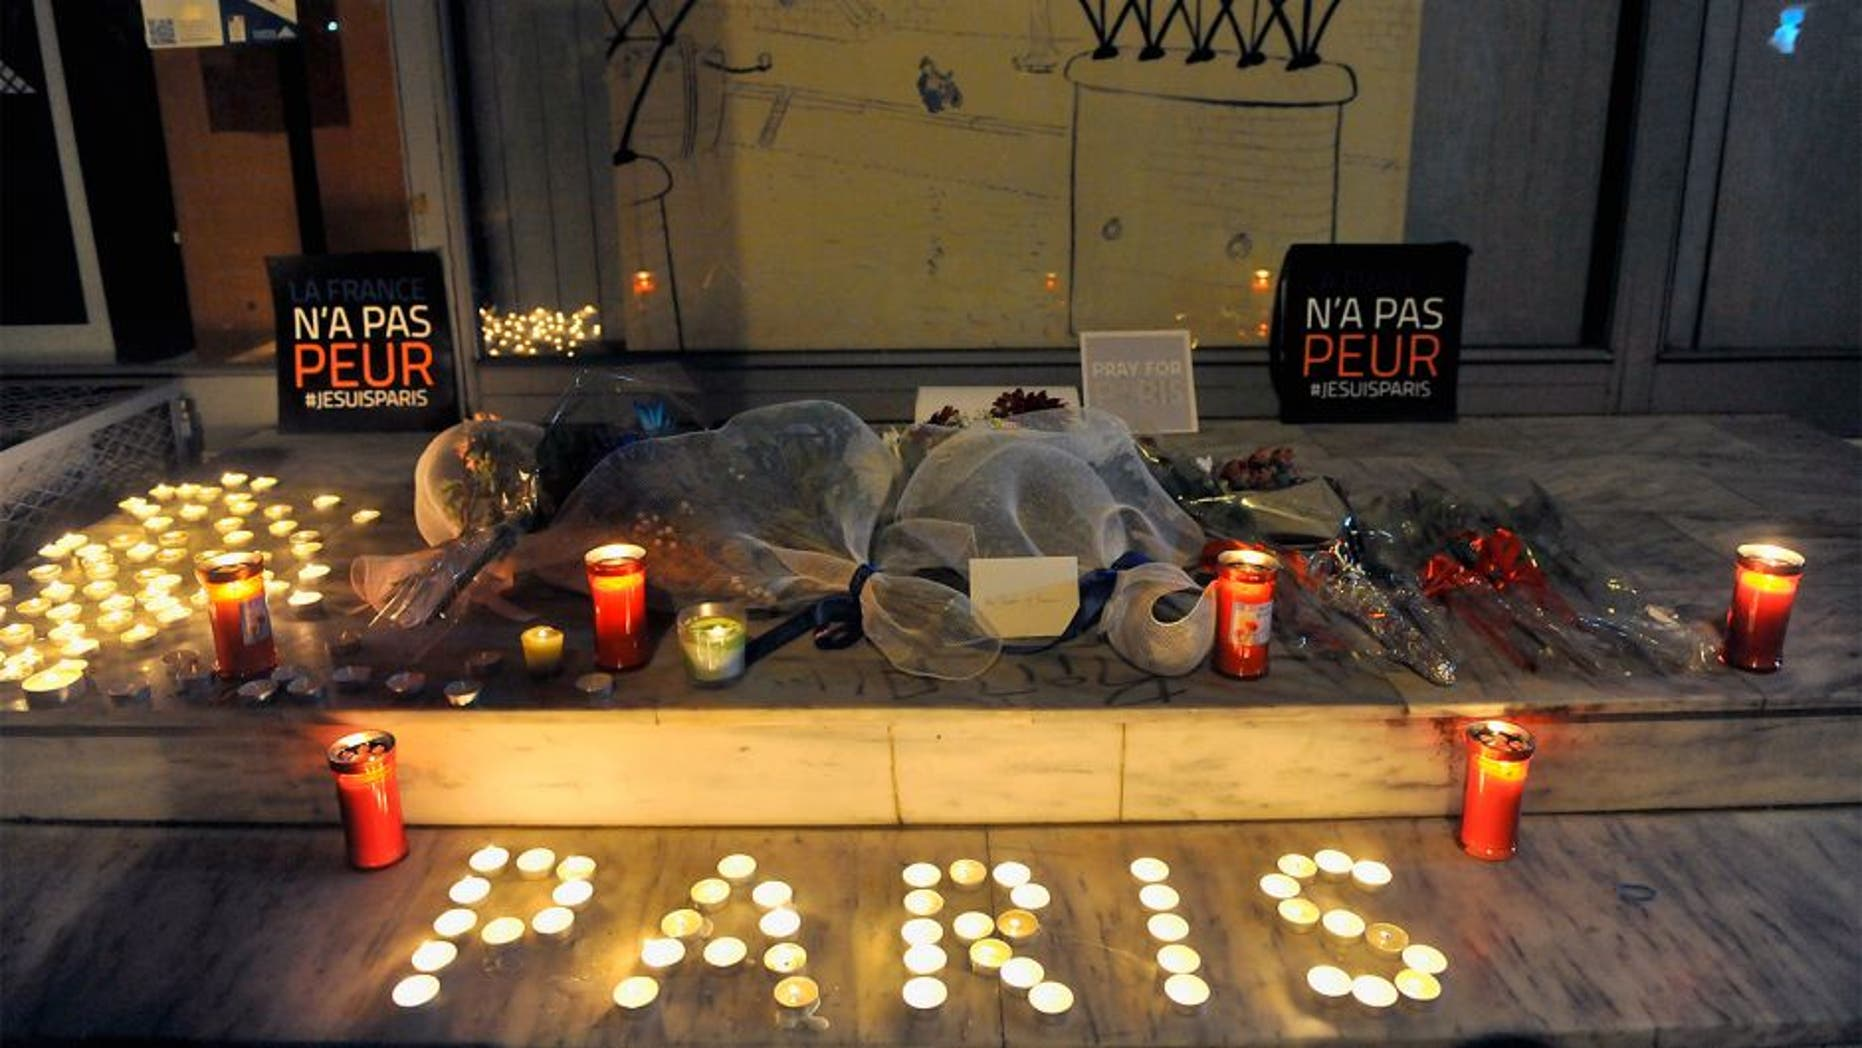 """Flowers and candles reading """"Paris"""" are pictured outside the French consulate in Thessaloniki on November 14, 2015, a day after deadly attacks in Paris. Islamic State jihadists claimed a series of coordinated attacks by gunmen and suicide bombers in Paris that killed at least 128 people in scenes of carnage at a concert hall, restaurants and the national stadium. The placards read """"France is not afraid"""". AFP PHOTO / Sakis Mitrolidis (Photo credit should read SAKIS MITROLIDIS/AFP/Getty Images)"""